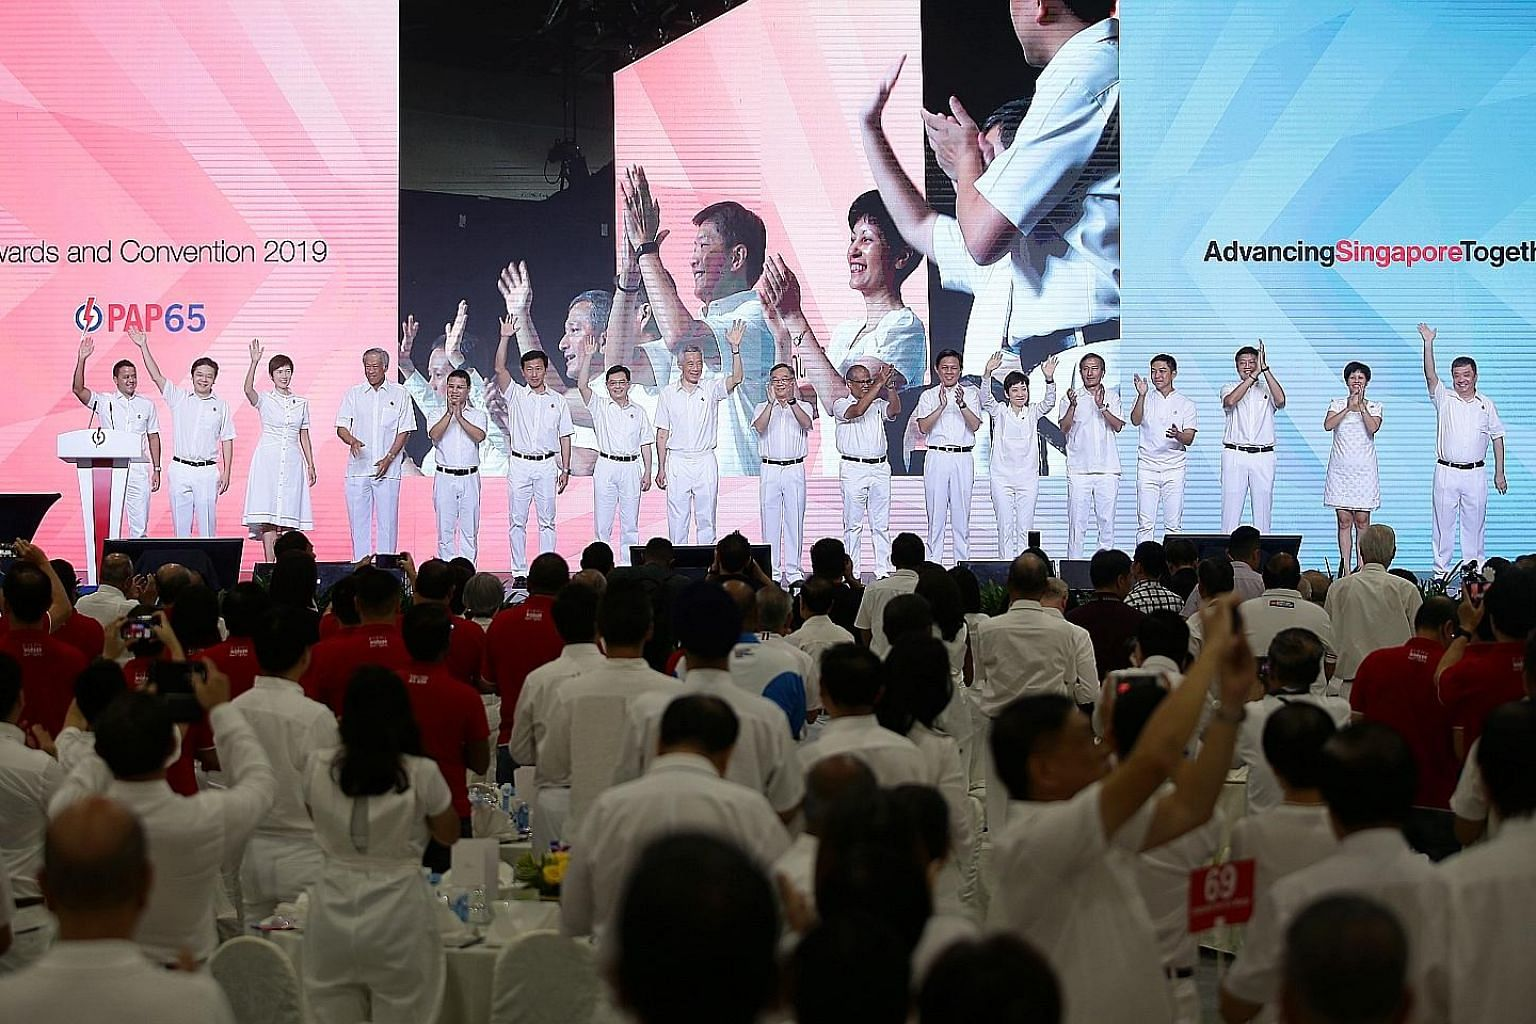 Members of the PAP's central executive committee at the convention yesterday: (from left) Holland-Bukit Timah GRC MP Christopher de Souza; National Development Minister Lawrence Wong; Manpower Minister Josephine Teo; Defence Minister Ng Eng Hen; Soci